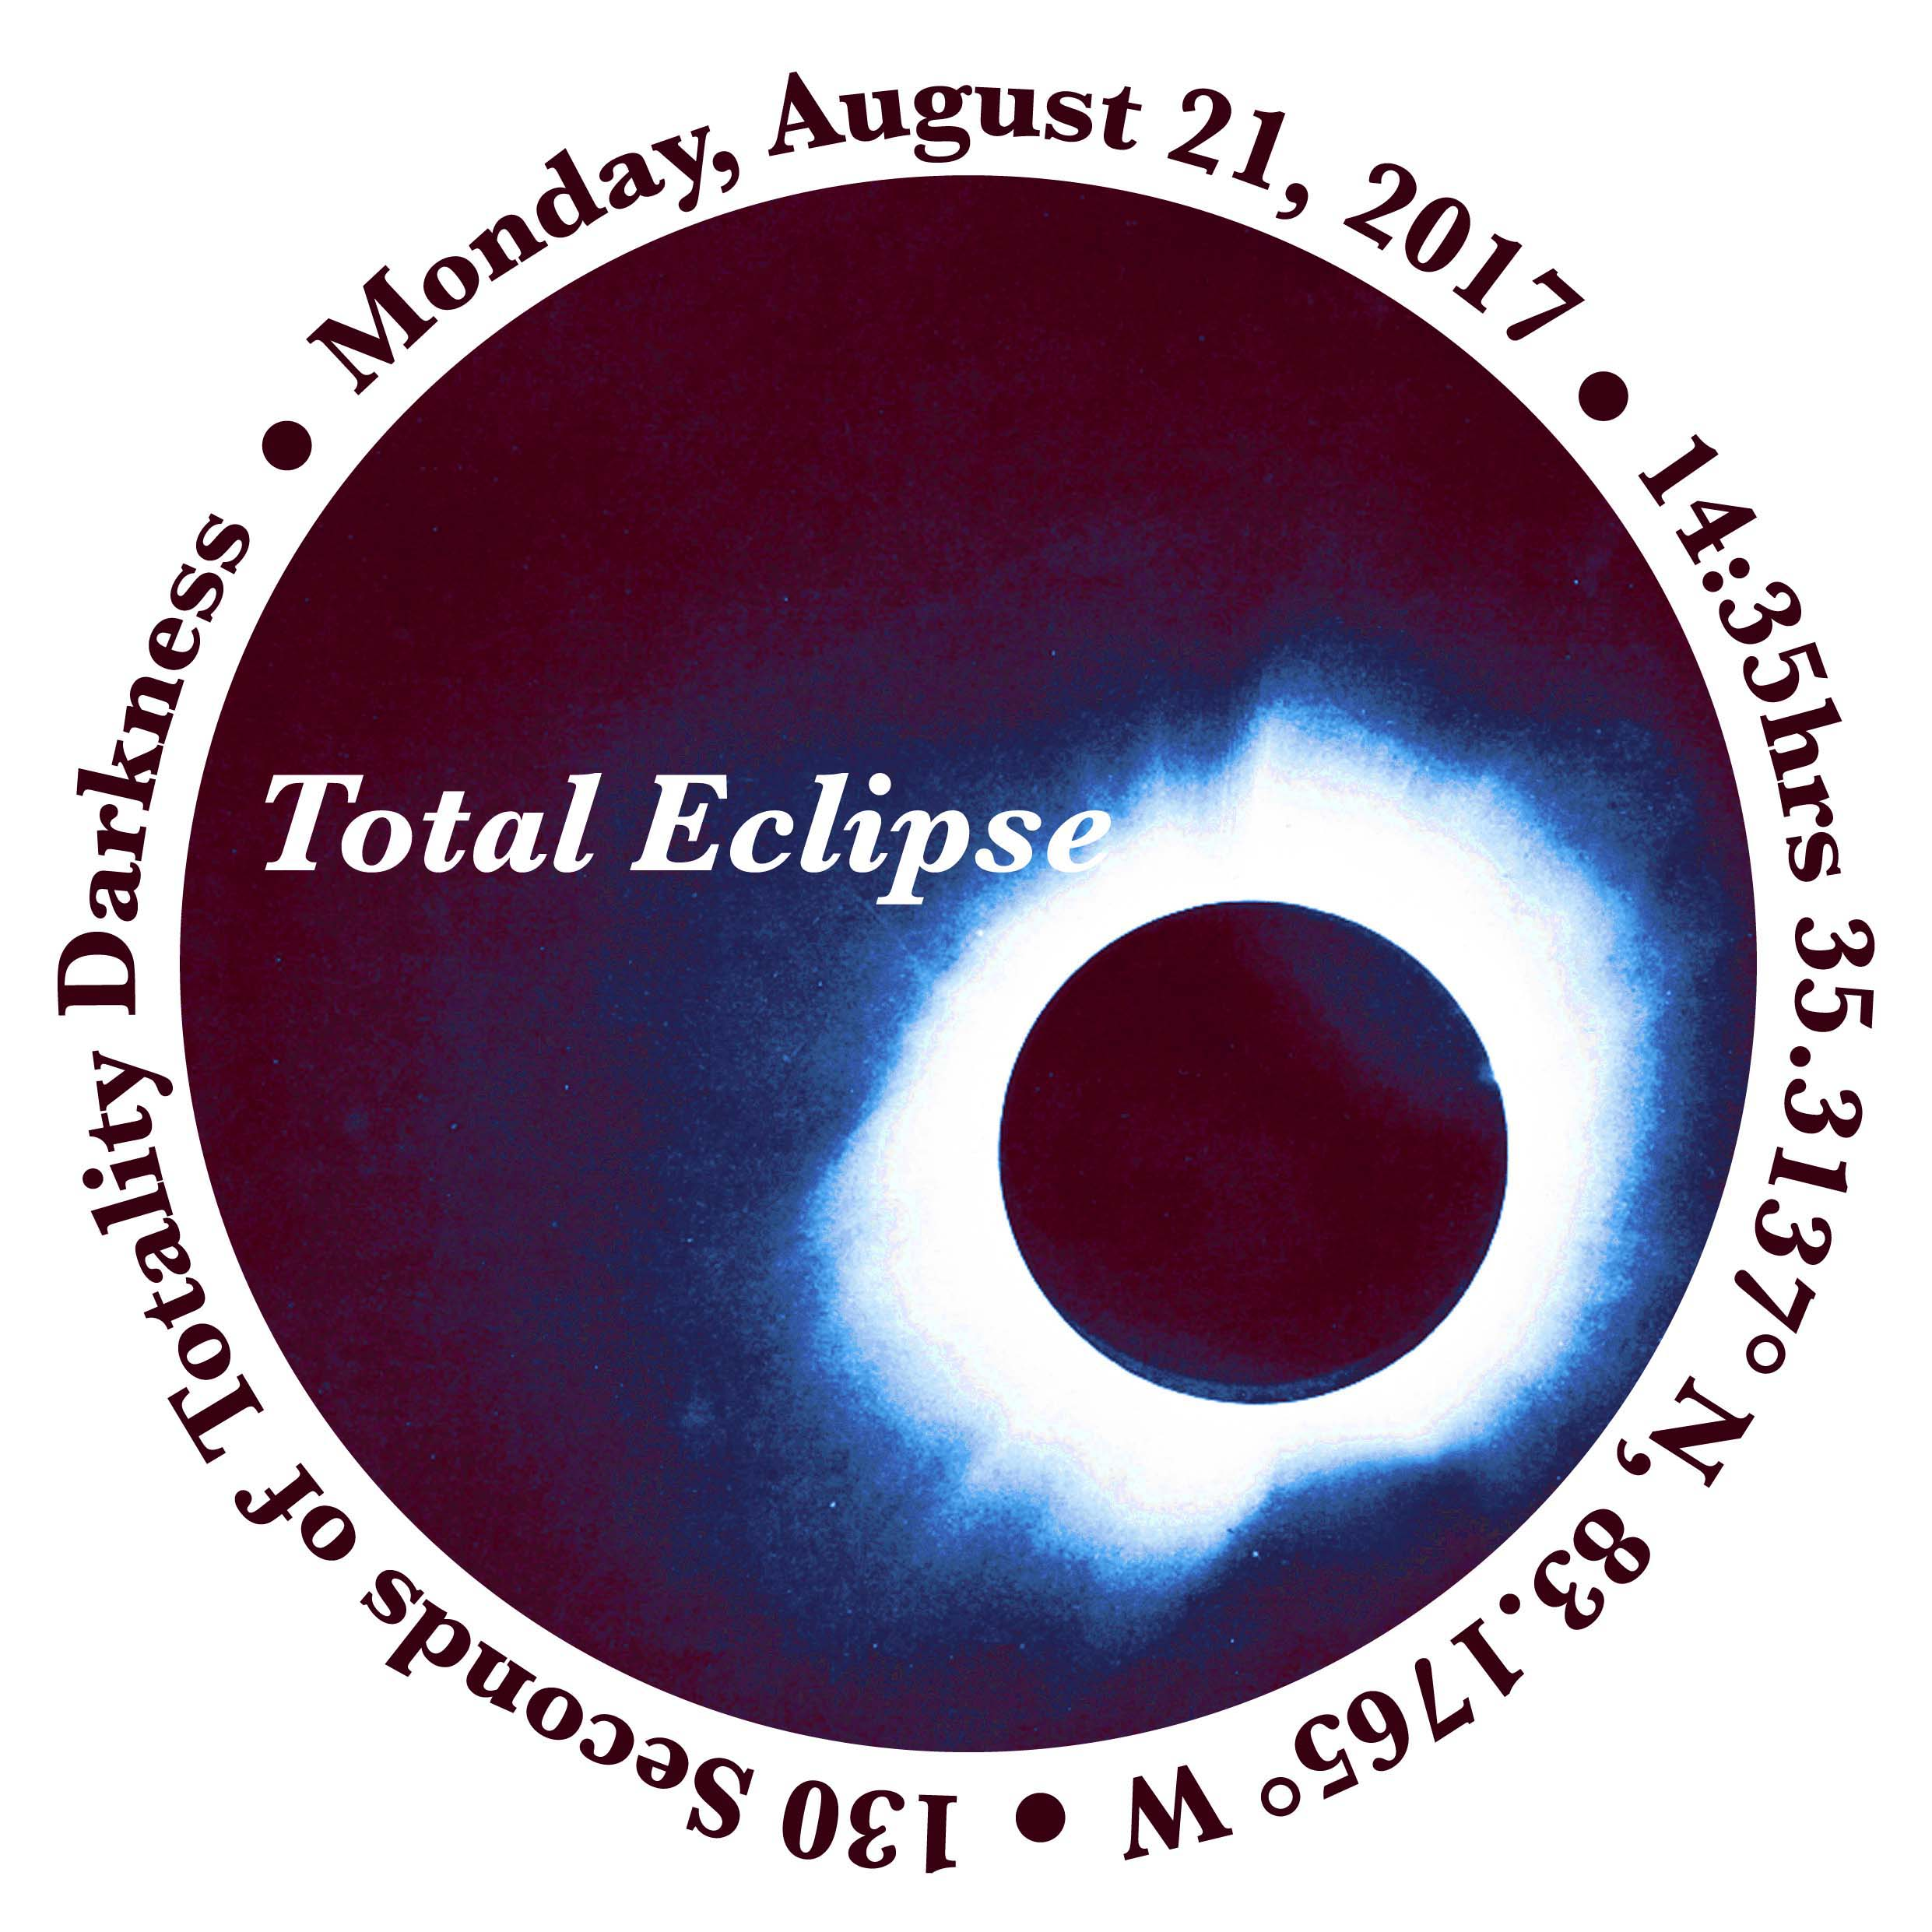 EclipseSticker.jpg